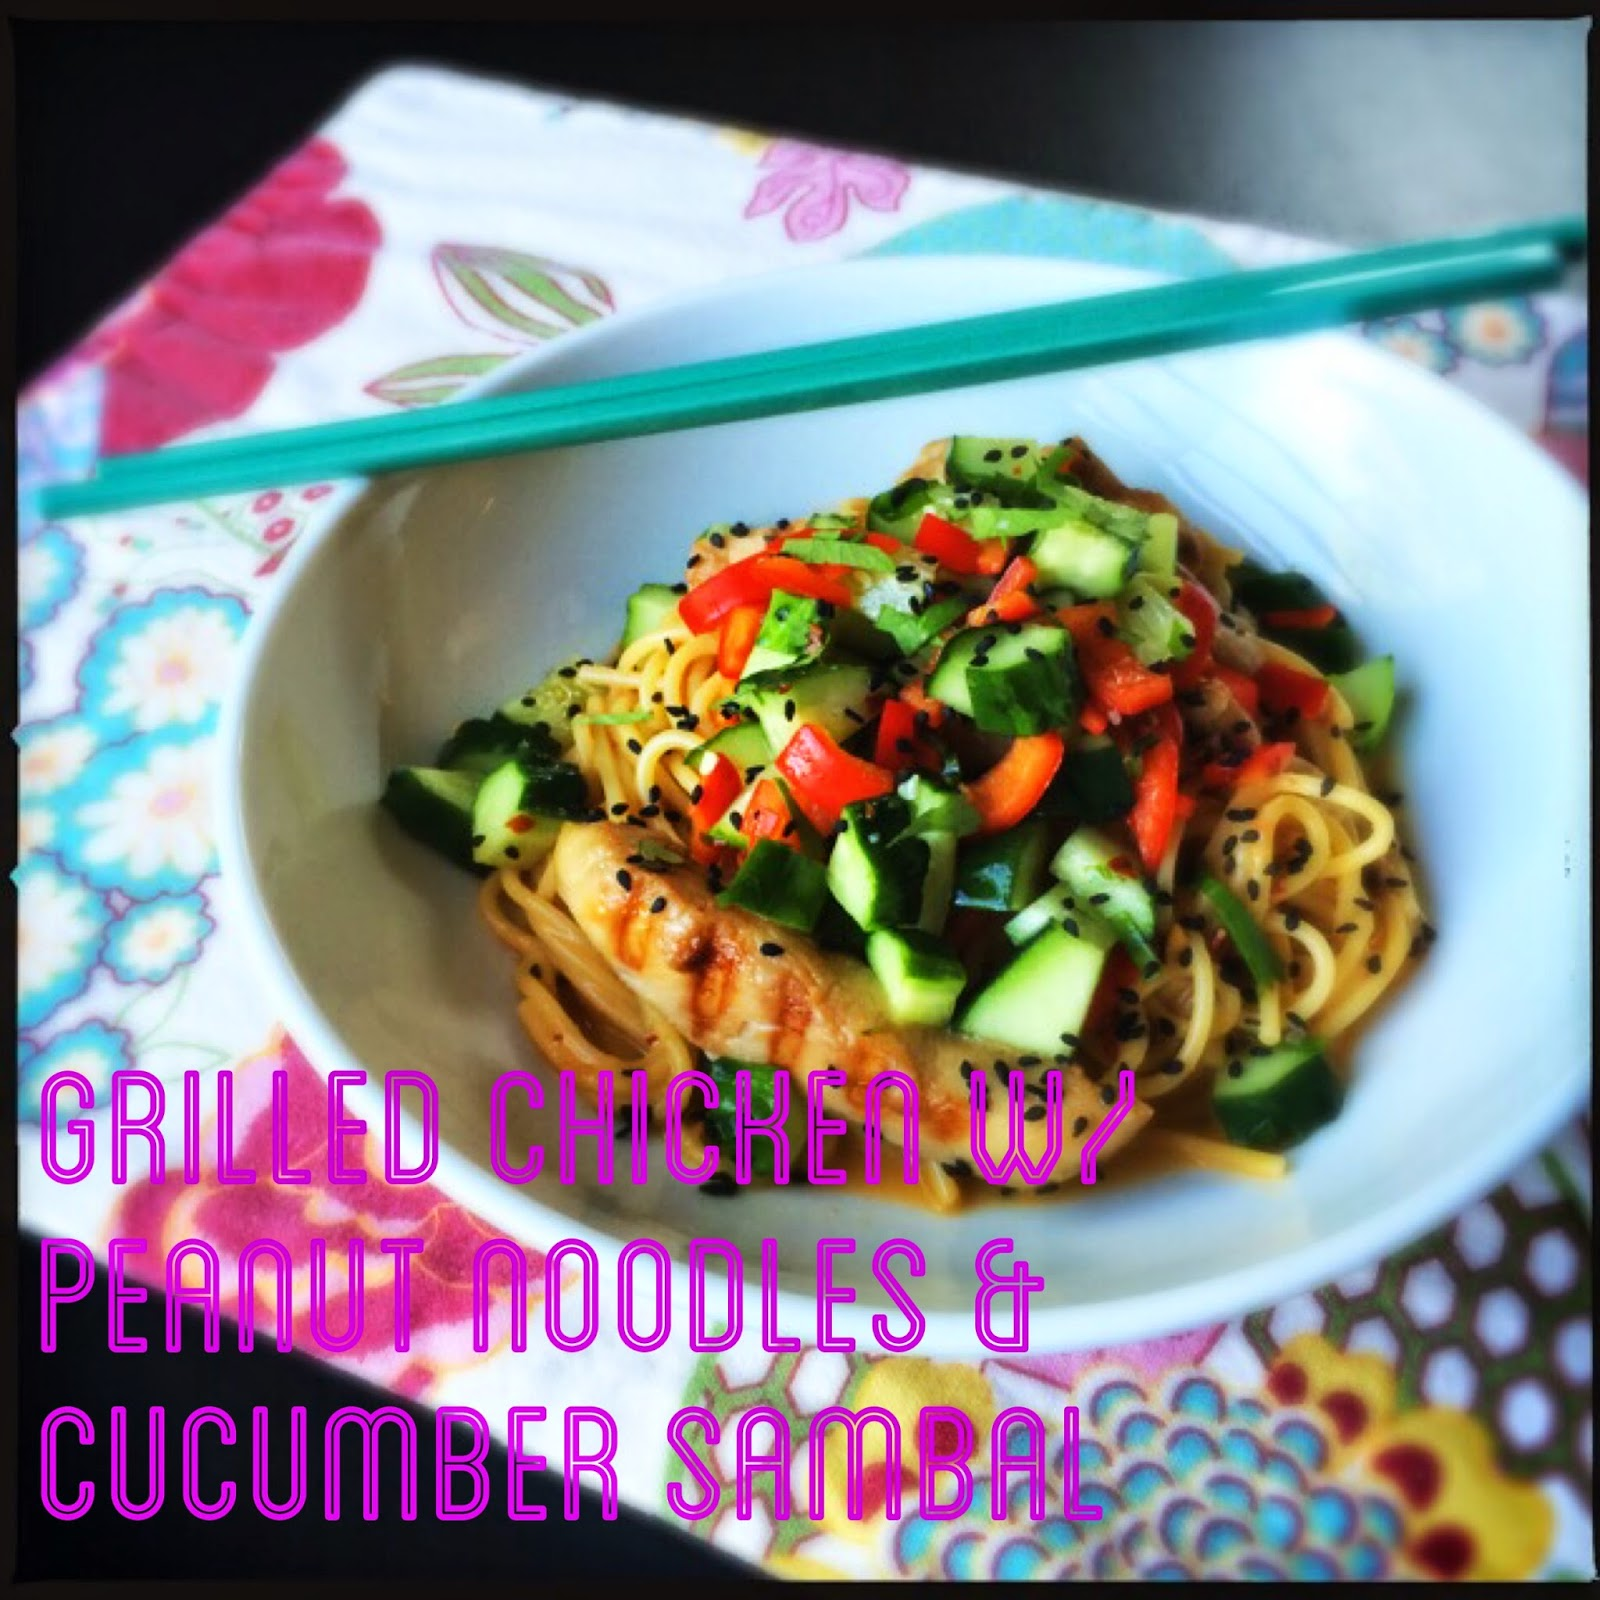 Grilled chicken with peanut noodles and a cucumber sambal. The Graffitied Gardenia